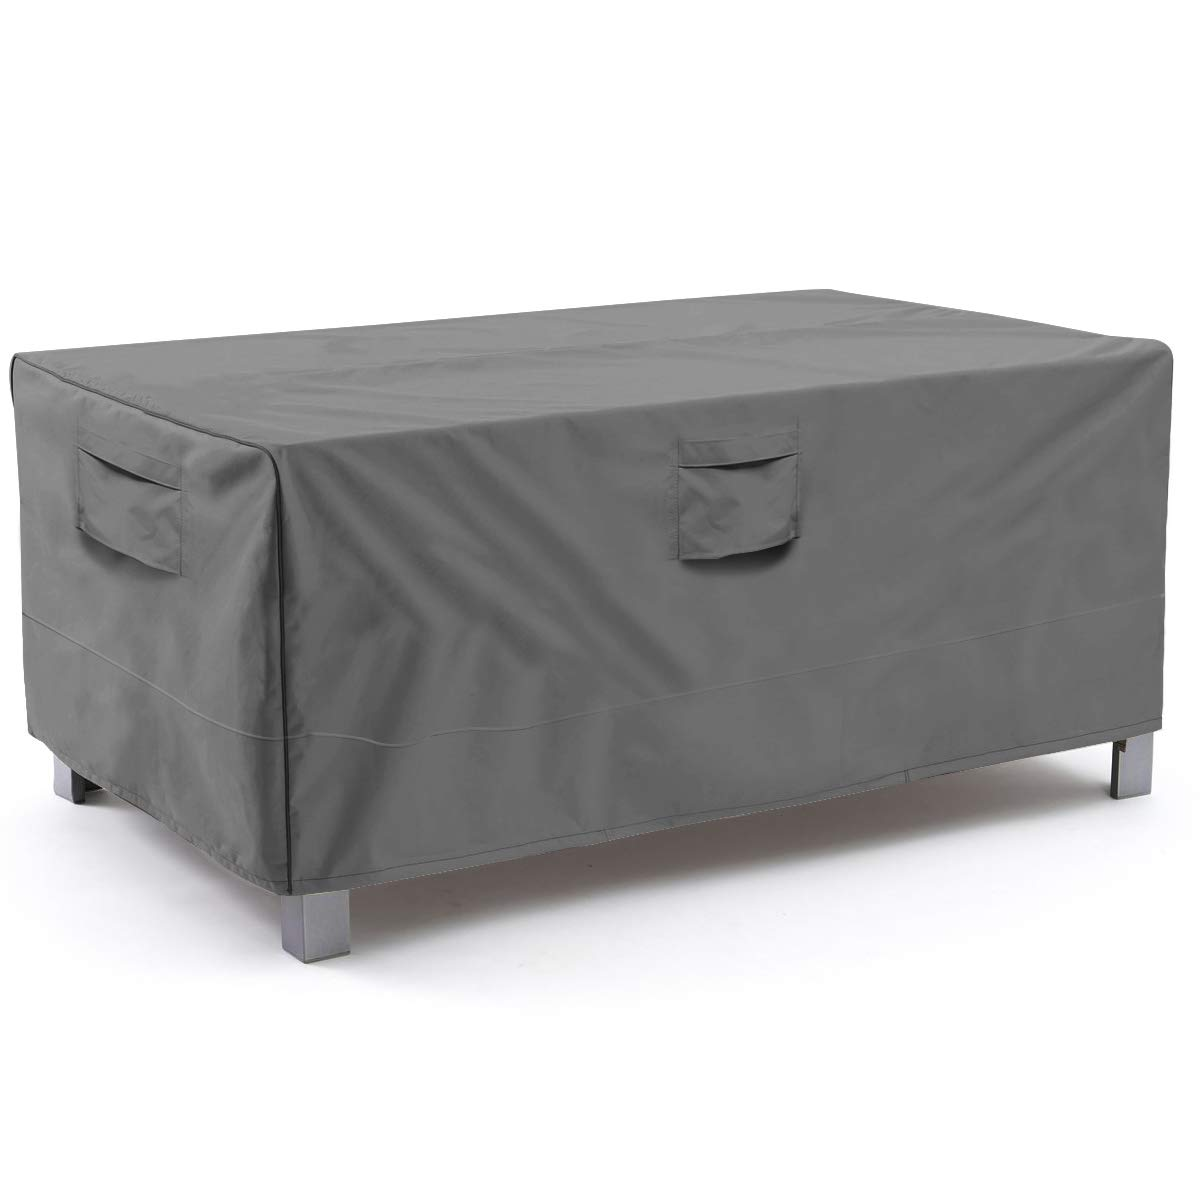 Vailge Veranda Rectangular/Oval Patio Table Cover, Heavy Duty and Waterproof Outdoor Lawn Patio Furniture Covers, Large Grey by Vailge